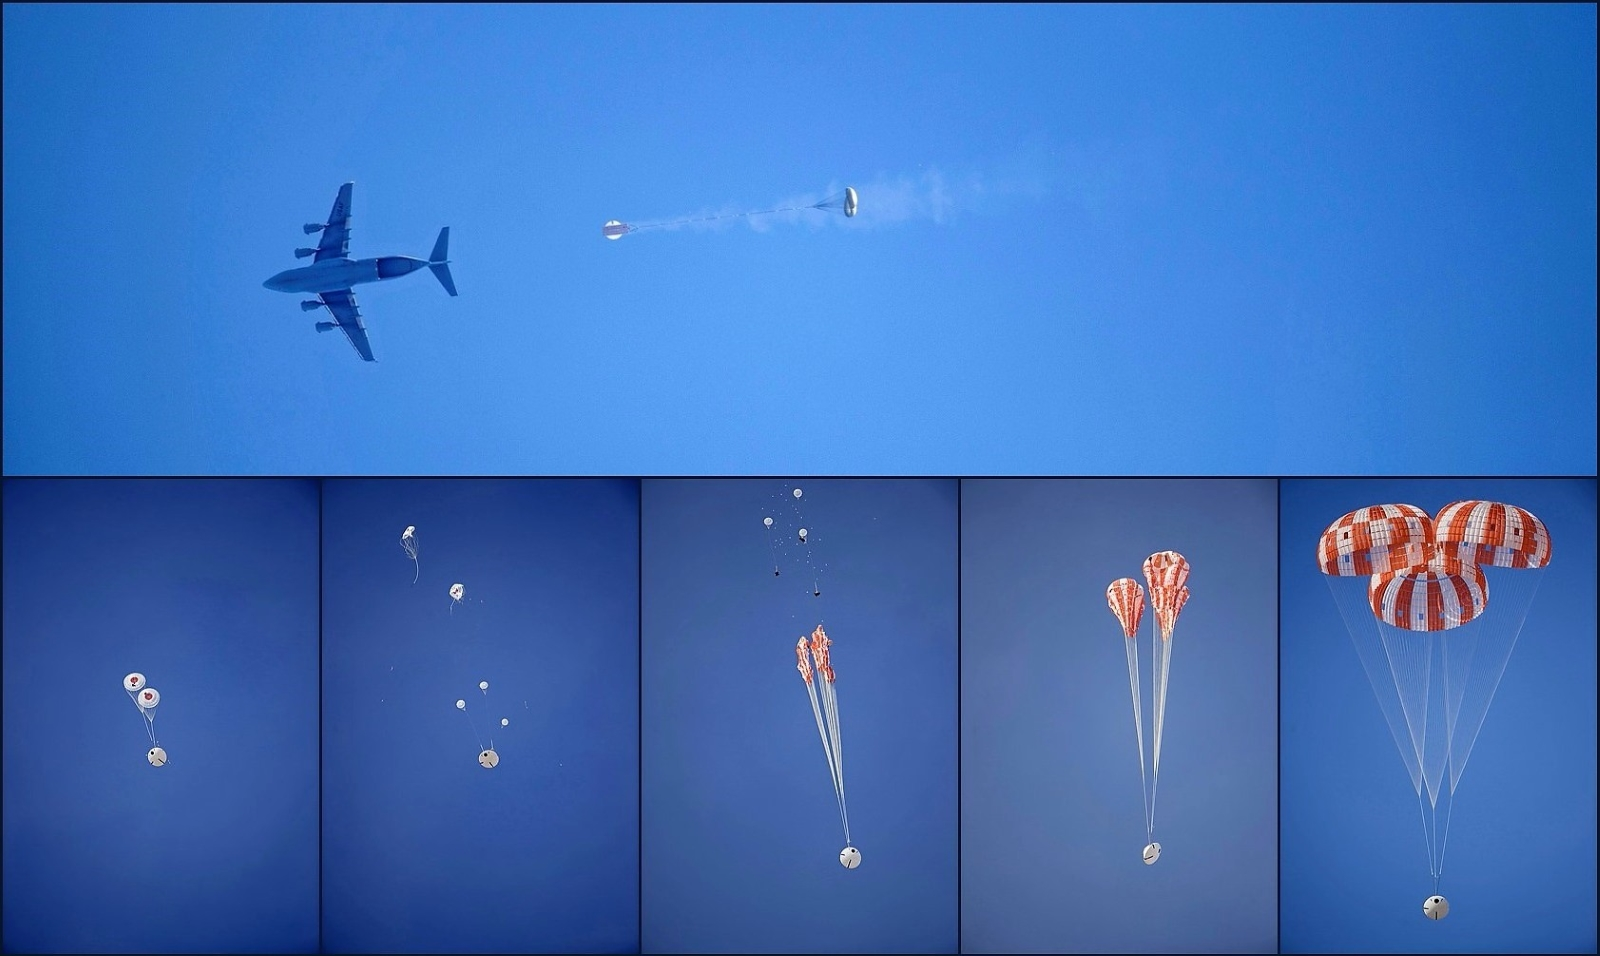 Orion parachute test sequence on March 8, 2017, at the U.S. Army Yuma Proving ground in Arizona